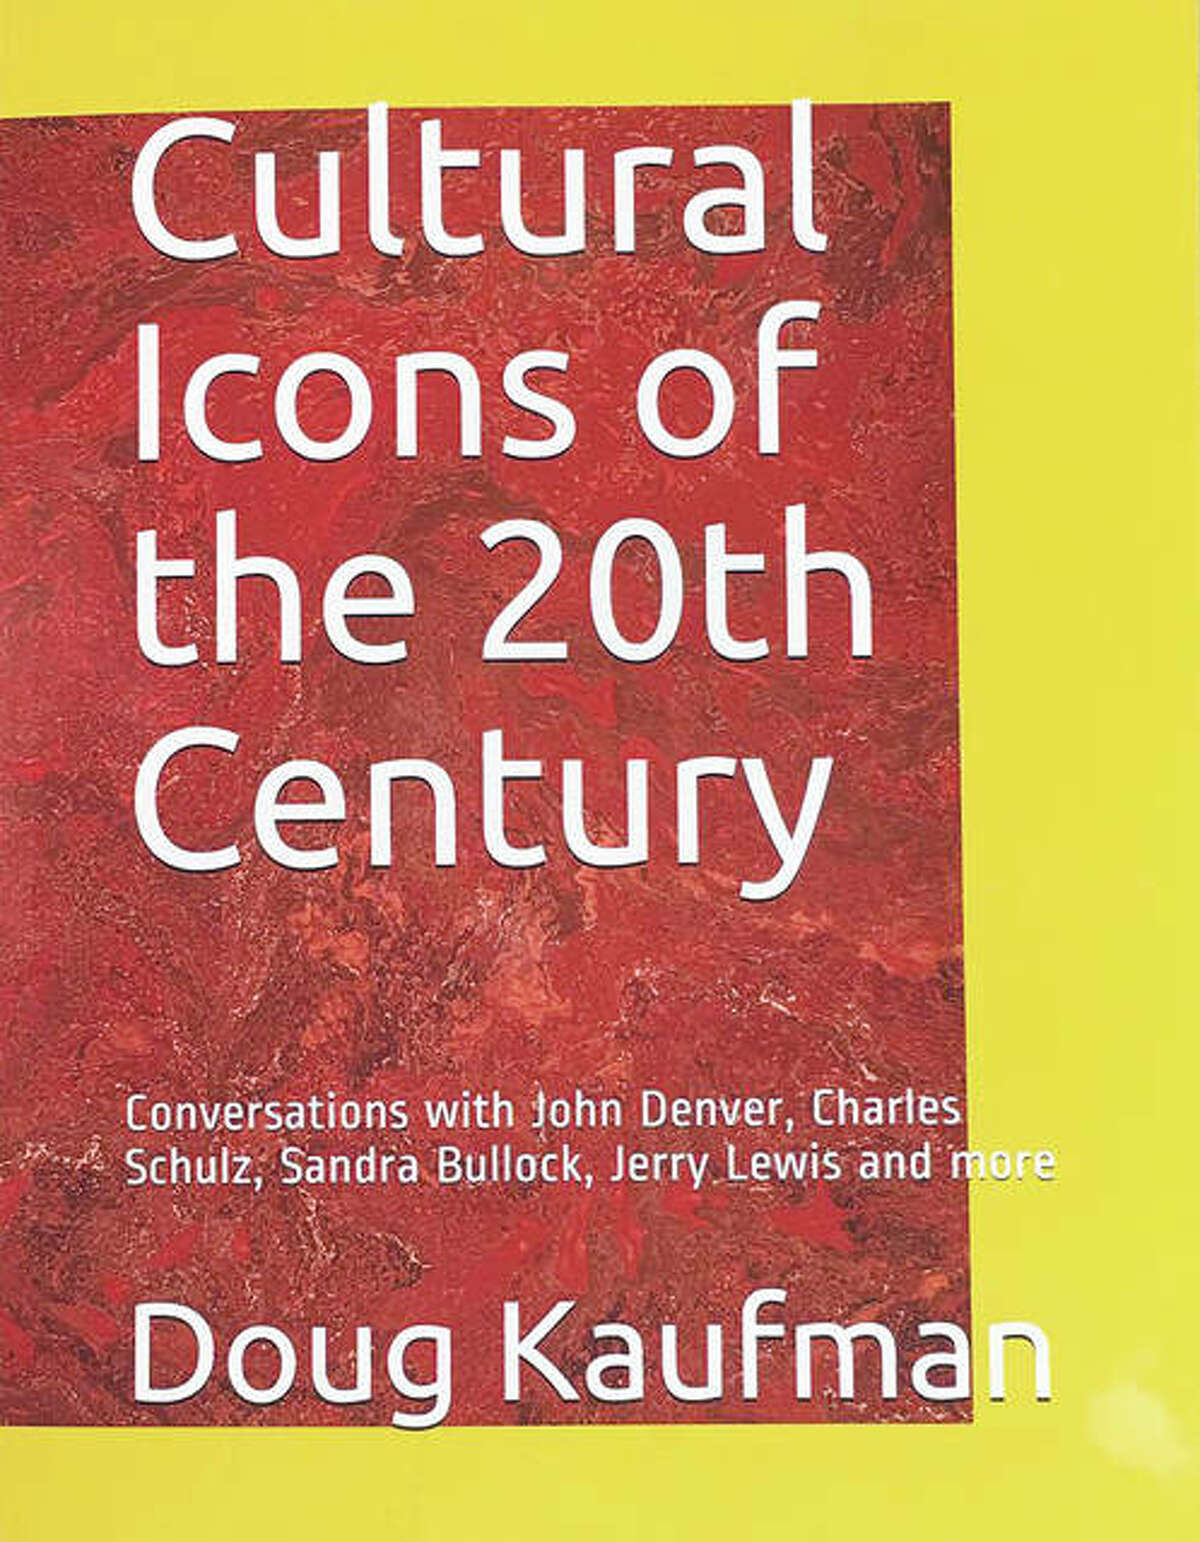 """""""Cultural Icons of the 20th Century: Conversations with John Denver, Charles Schulz, Sandra Bullock, Jerry Lewis and more,"""" by Doug Kaufman, contains Kaufman's celebrity interviews from the 15-plus years he worked as a journalist at the Belleville News-Democrat. Kaufman graduated from Southern Illinois University Edwardsville with a degree in journalism/mass communications."""